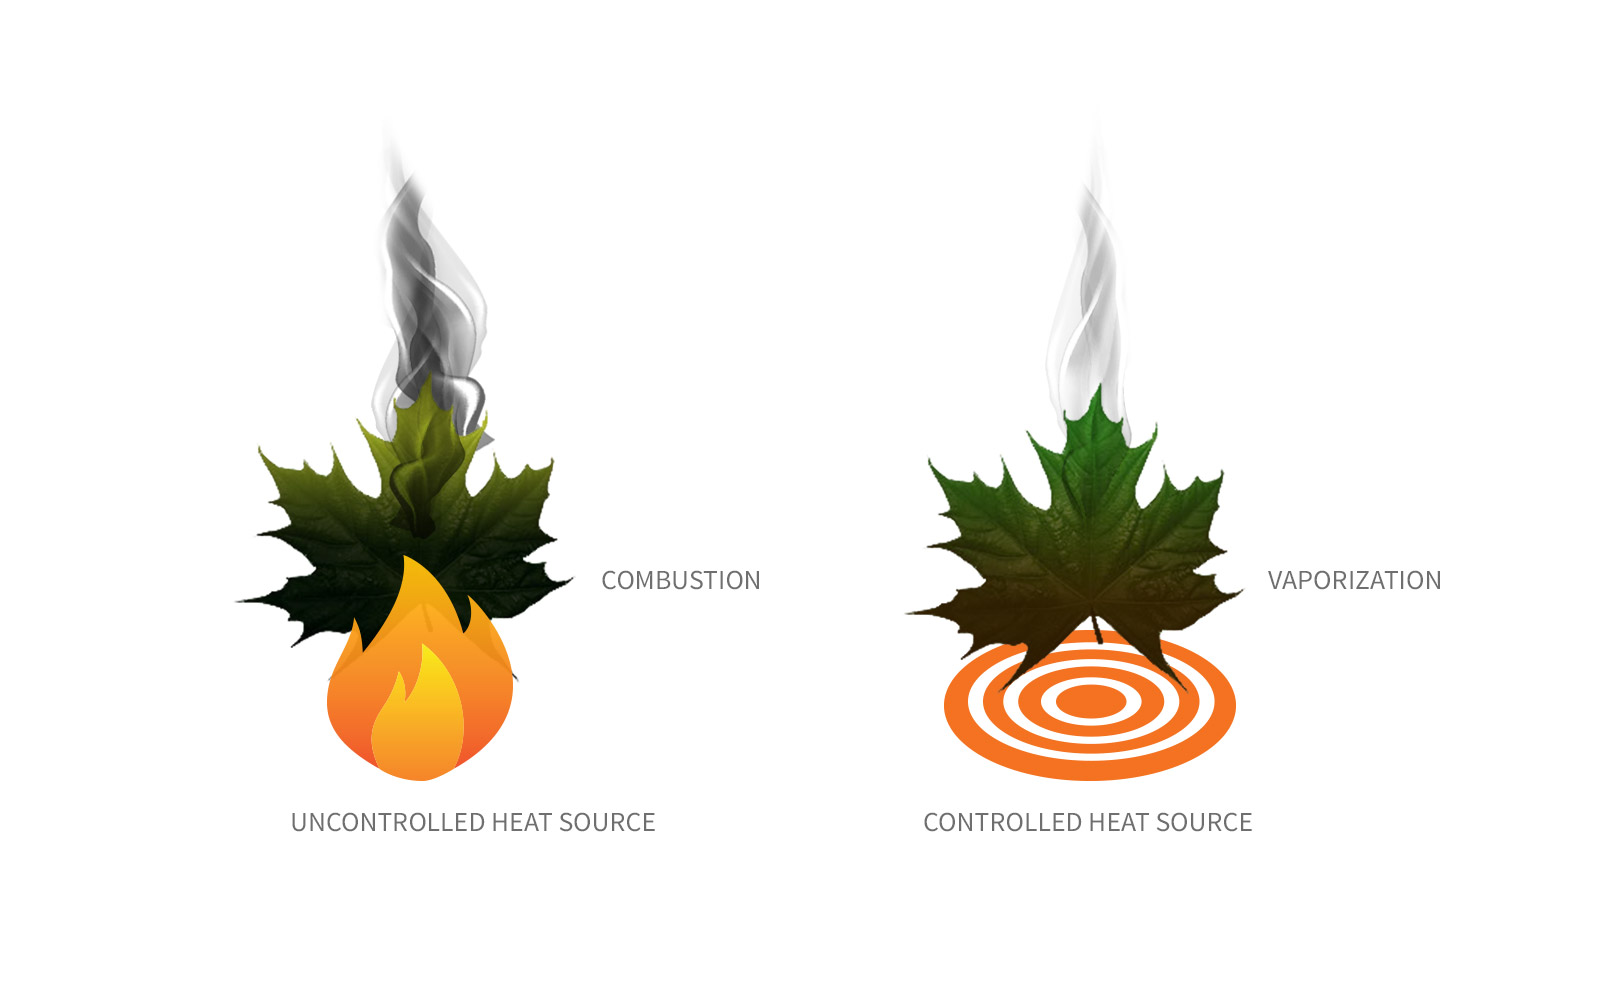 combustion vs vaporiztion